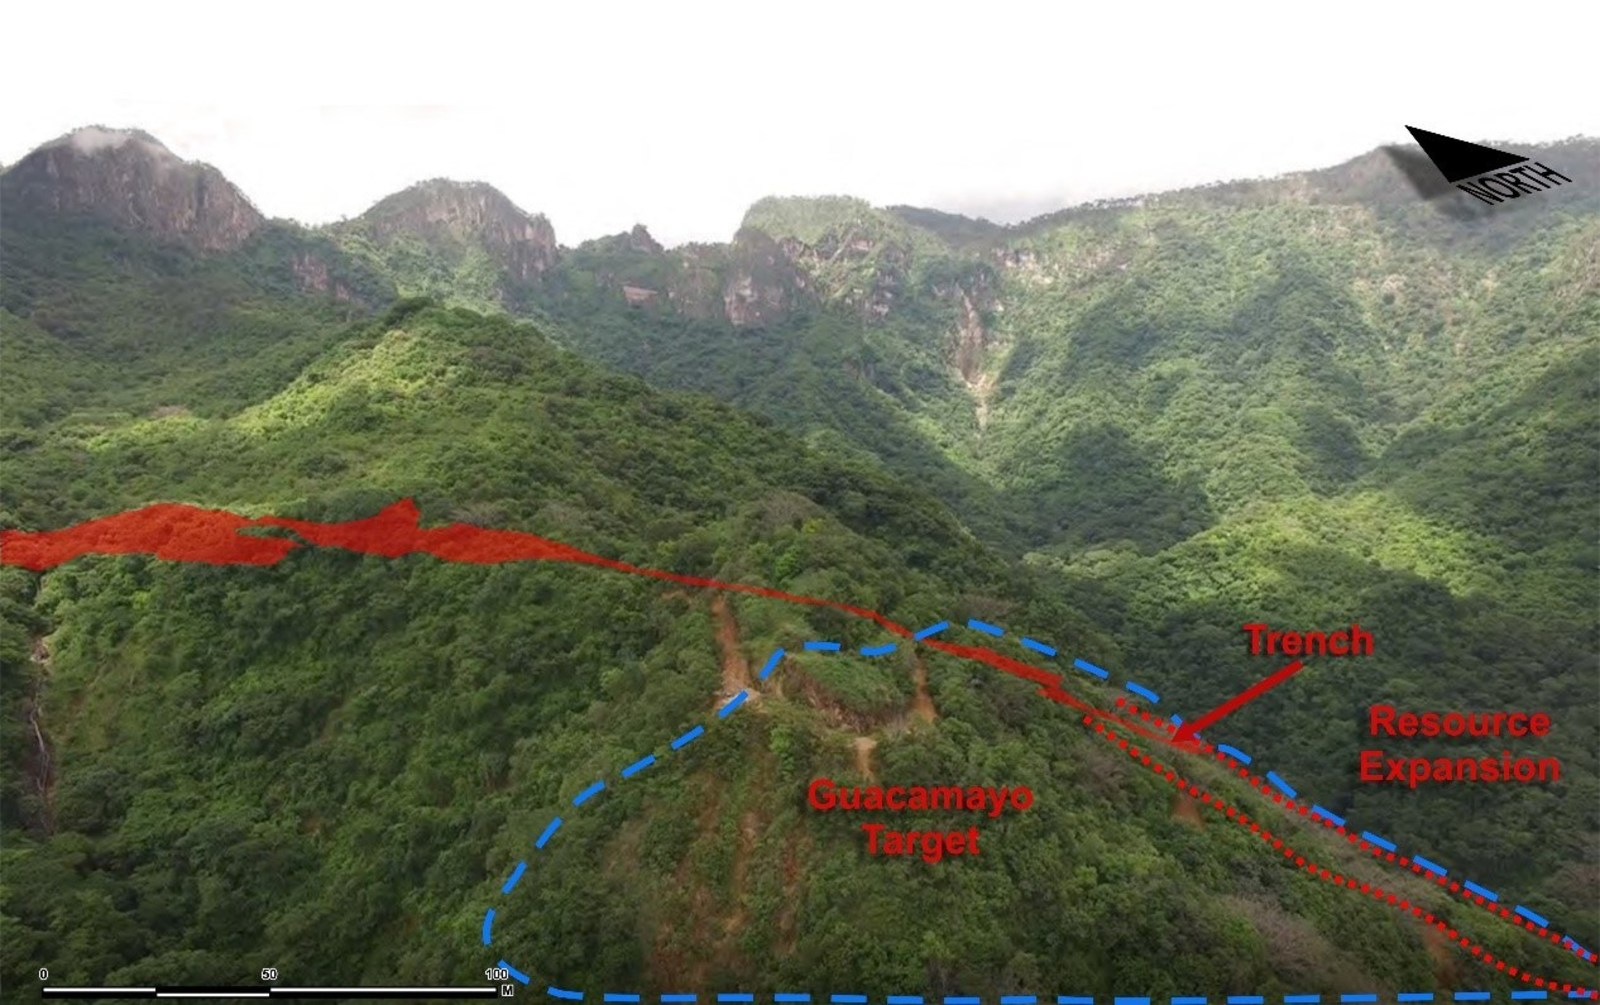 Figure 3 Aerial view - Guacamayo Target and Resource Area